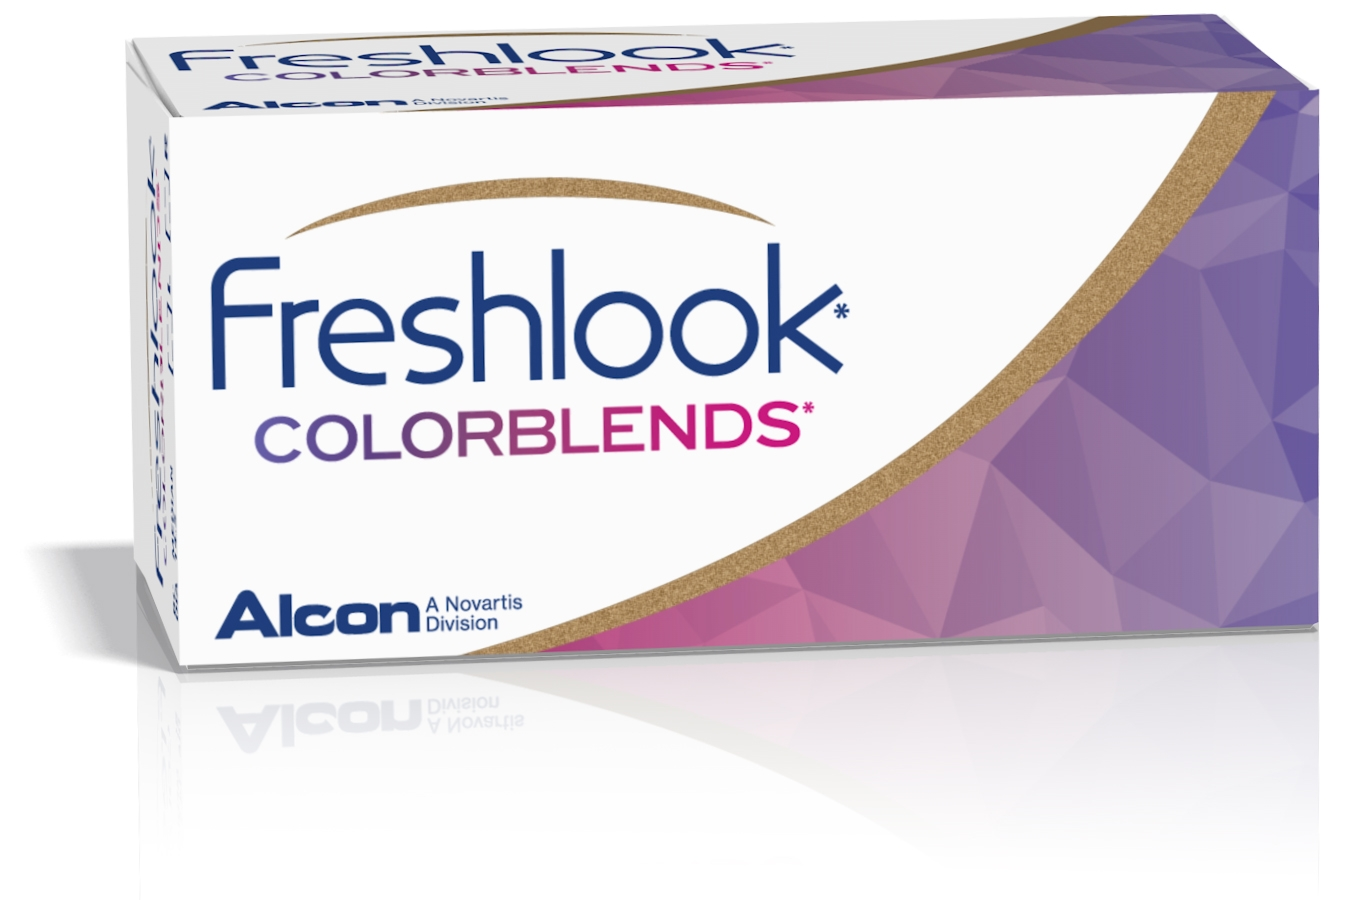 FreshLook Colorblends, Alcon (2 Stk. mit dpt.)